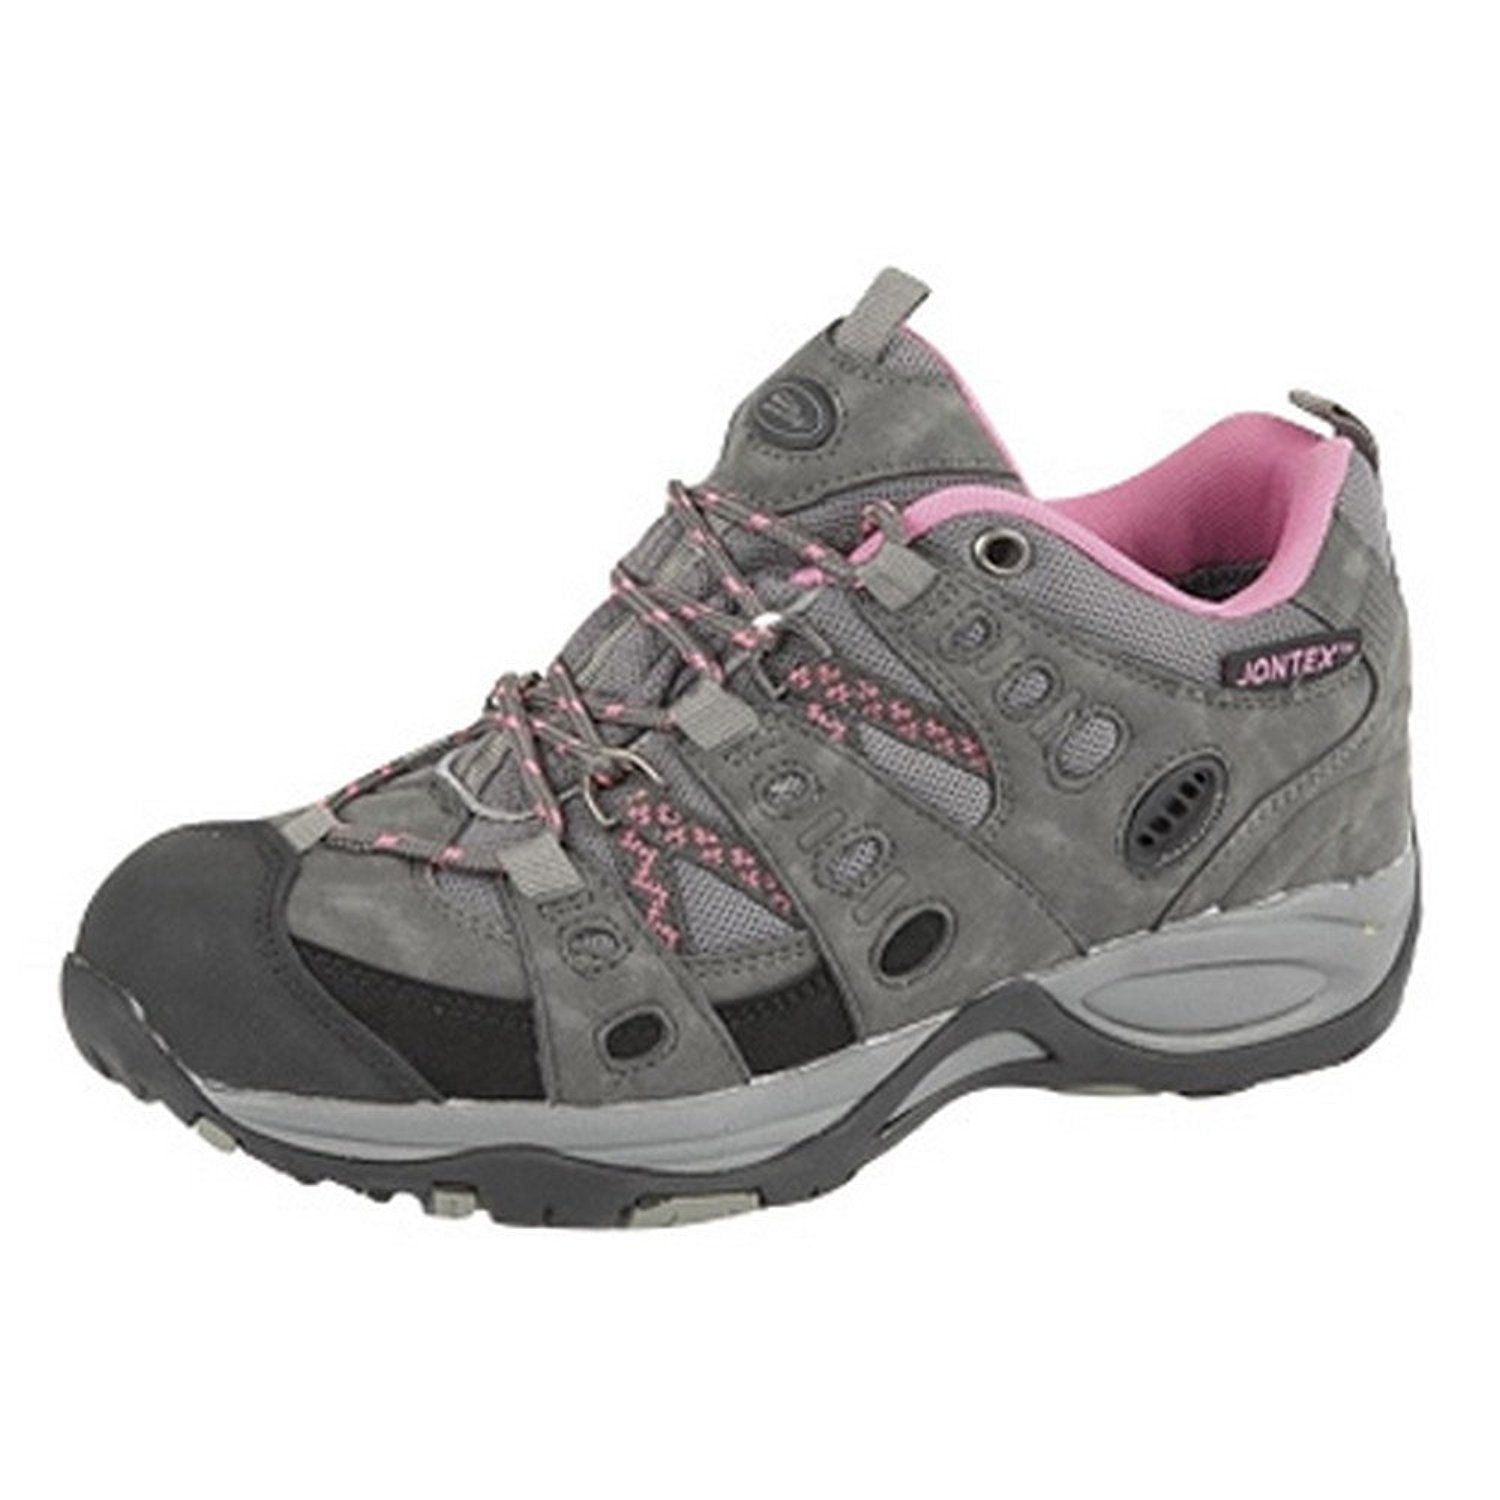 3c56ef8e8d1 Johnscliffe Womens/Ladies Cascade Approach Trekking Shoes ** Click ...